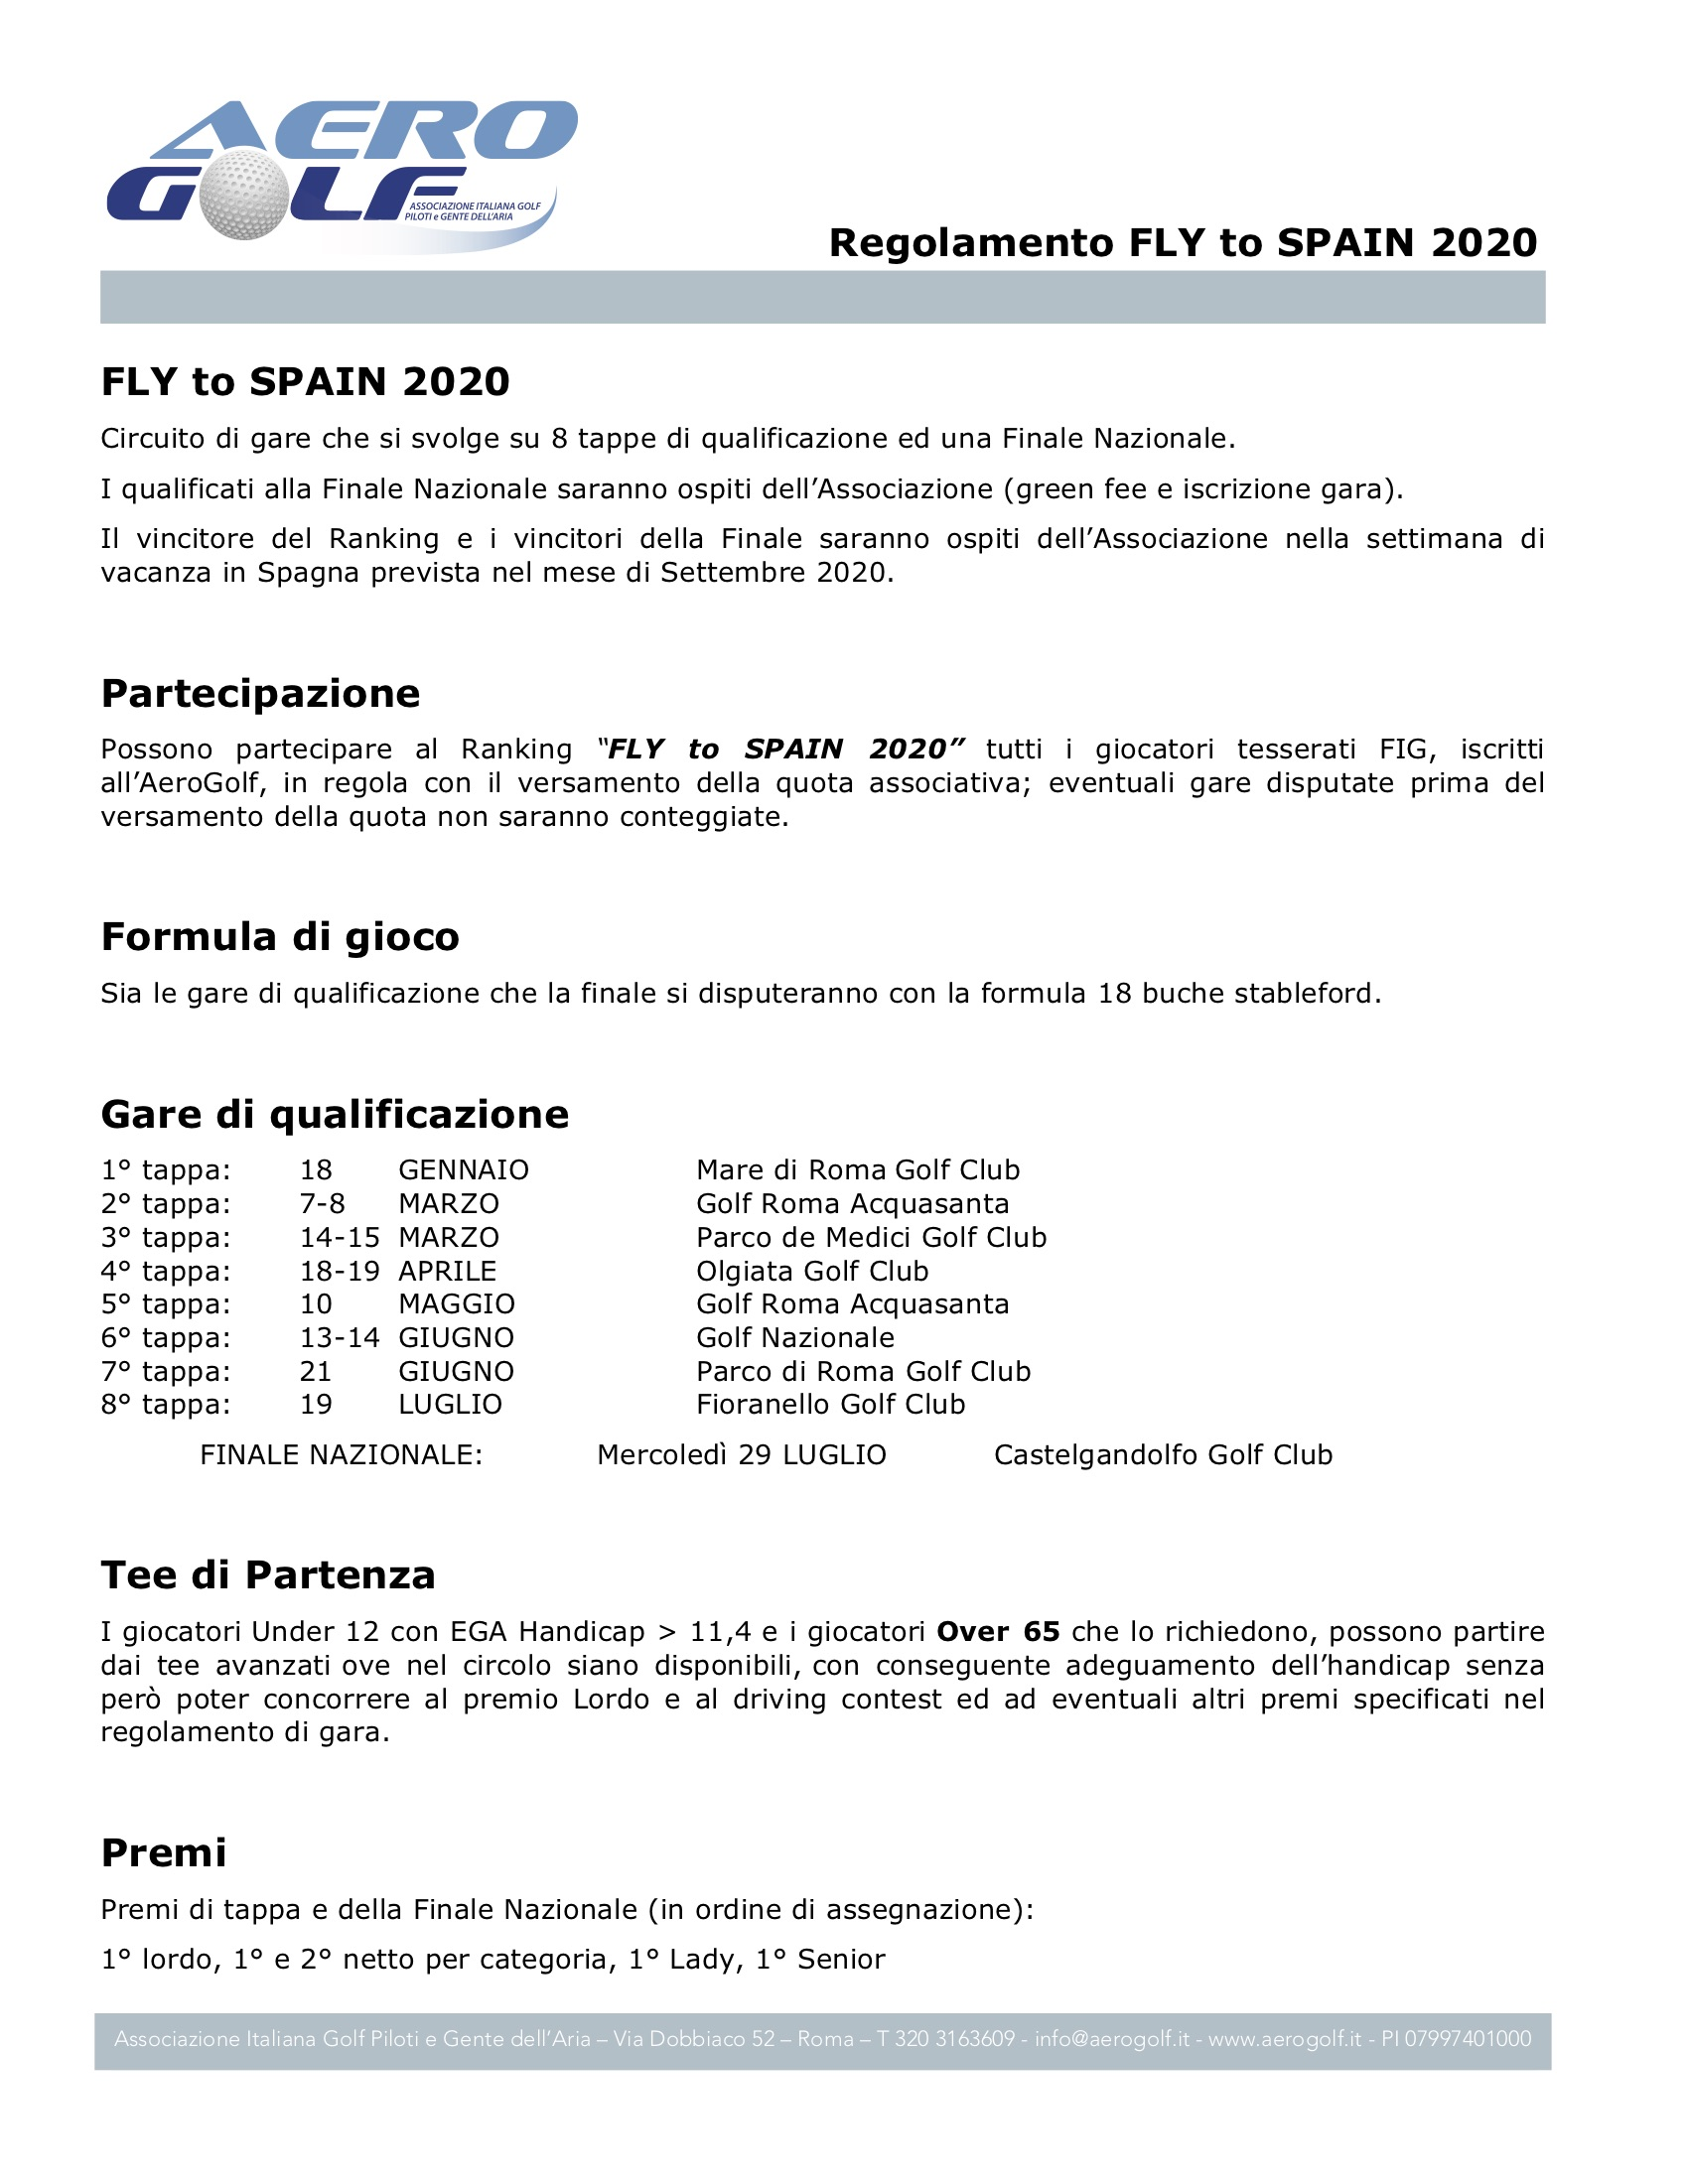 2020-reg-fly-to-spain-pag-1